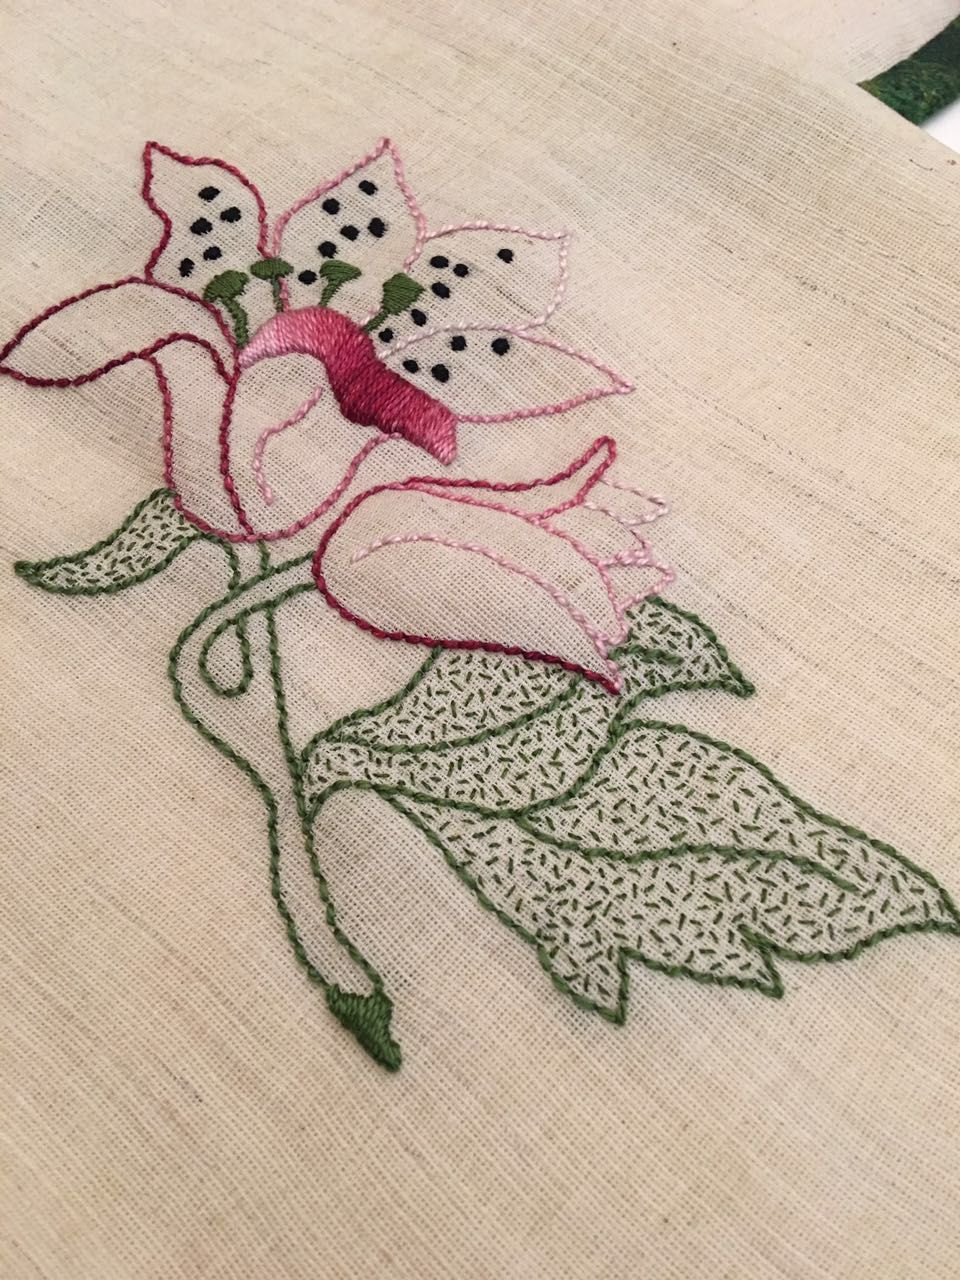 Pin by gouri joshi on embroidery stitches floral stitches embroidery stitches embroidery patterns simple designs jacobean needlepoint motifs garden embroidered flowers stitching bankloansurffo Images